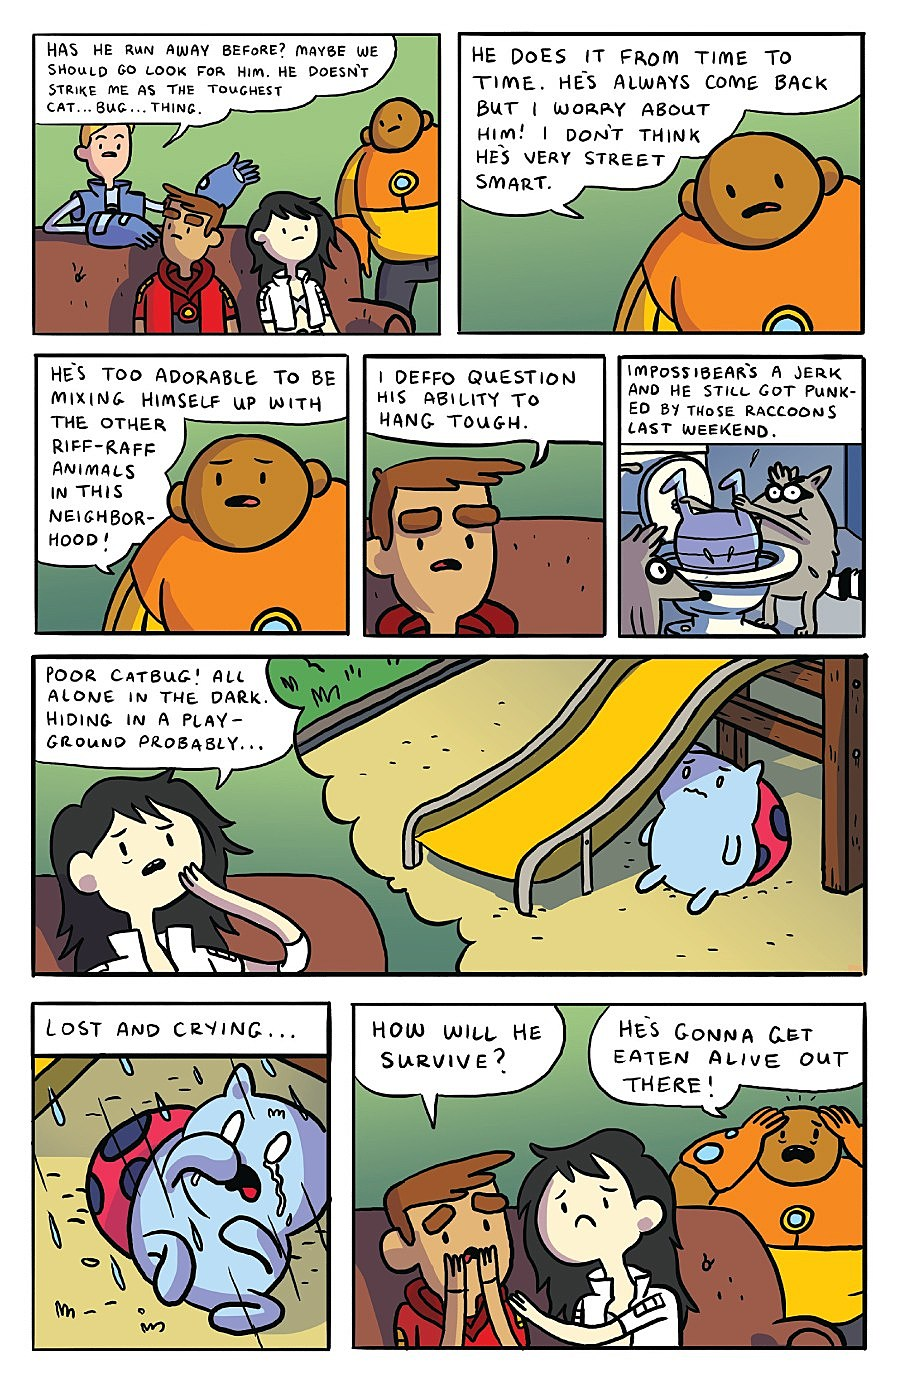 Catbug Goes Missing In Bravest Warriors 6 Backup Preview